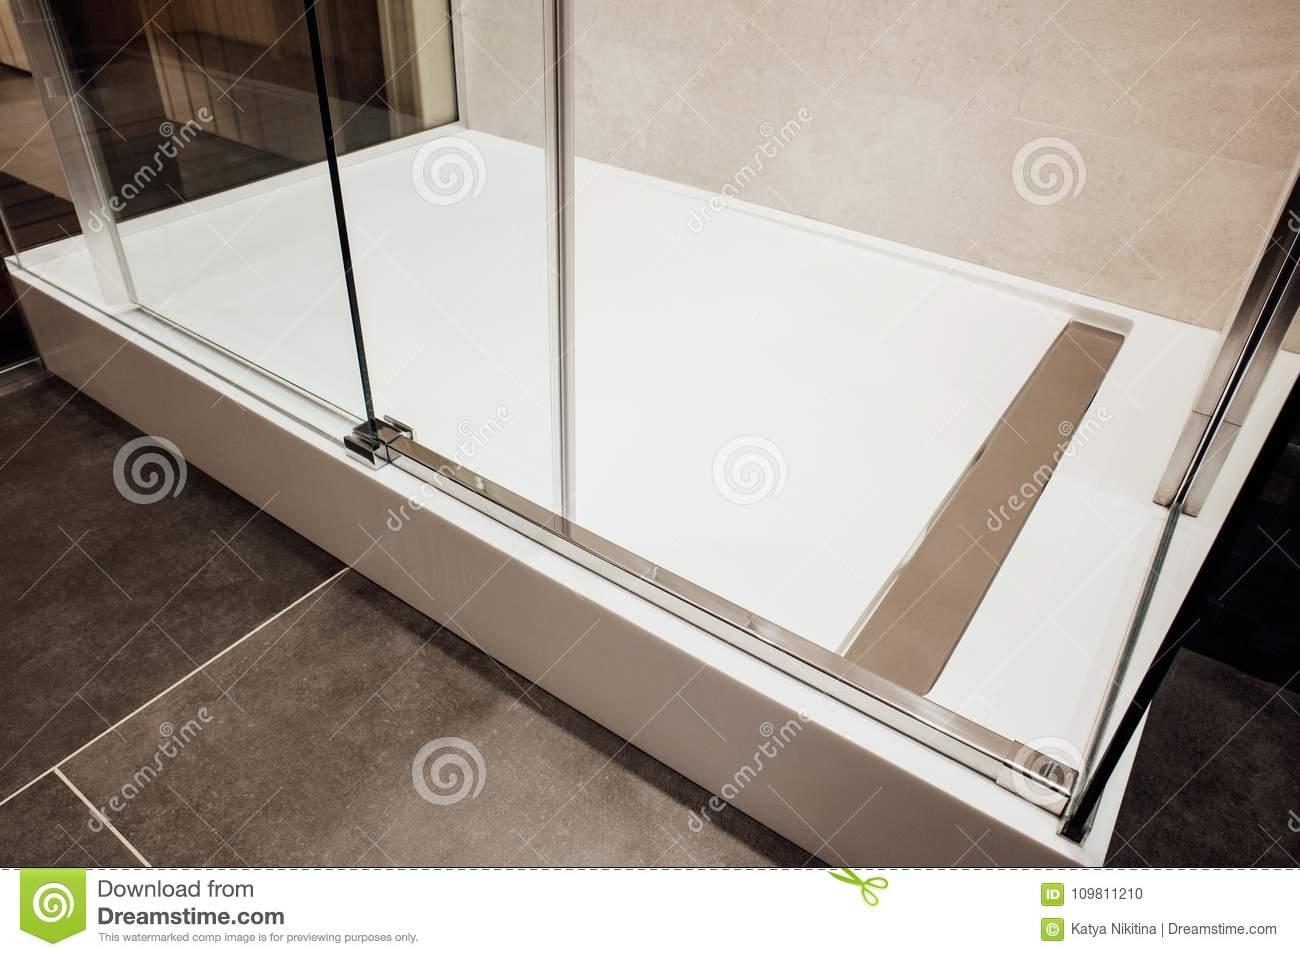 The Design Of Glass Walls And Sliding Glass Doors And Lower Metal